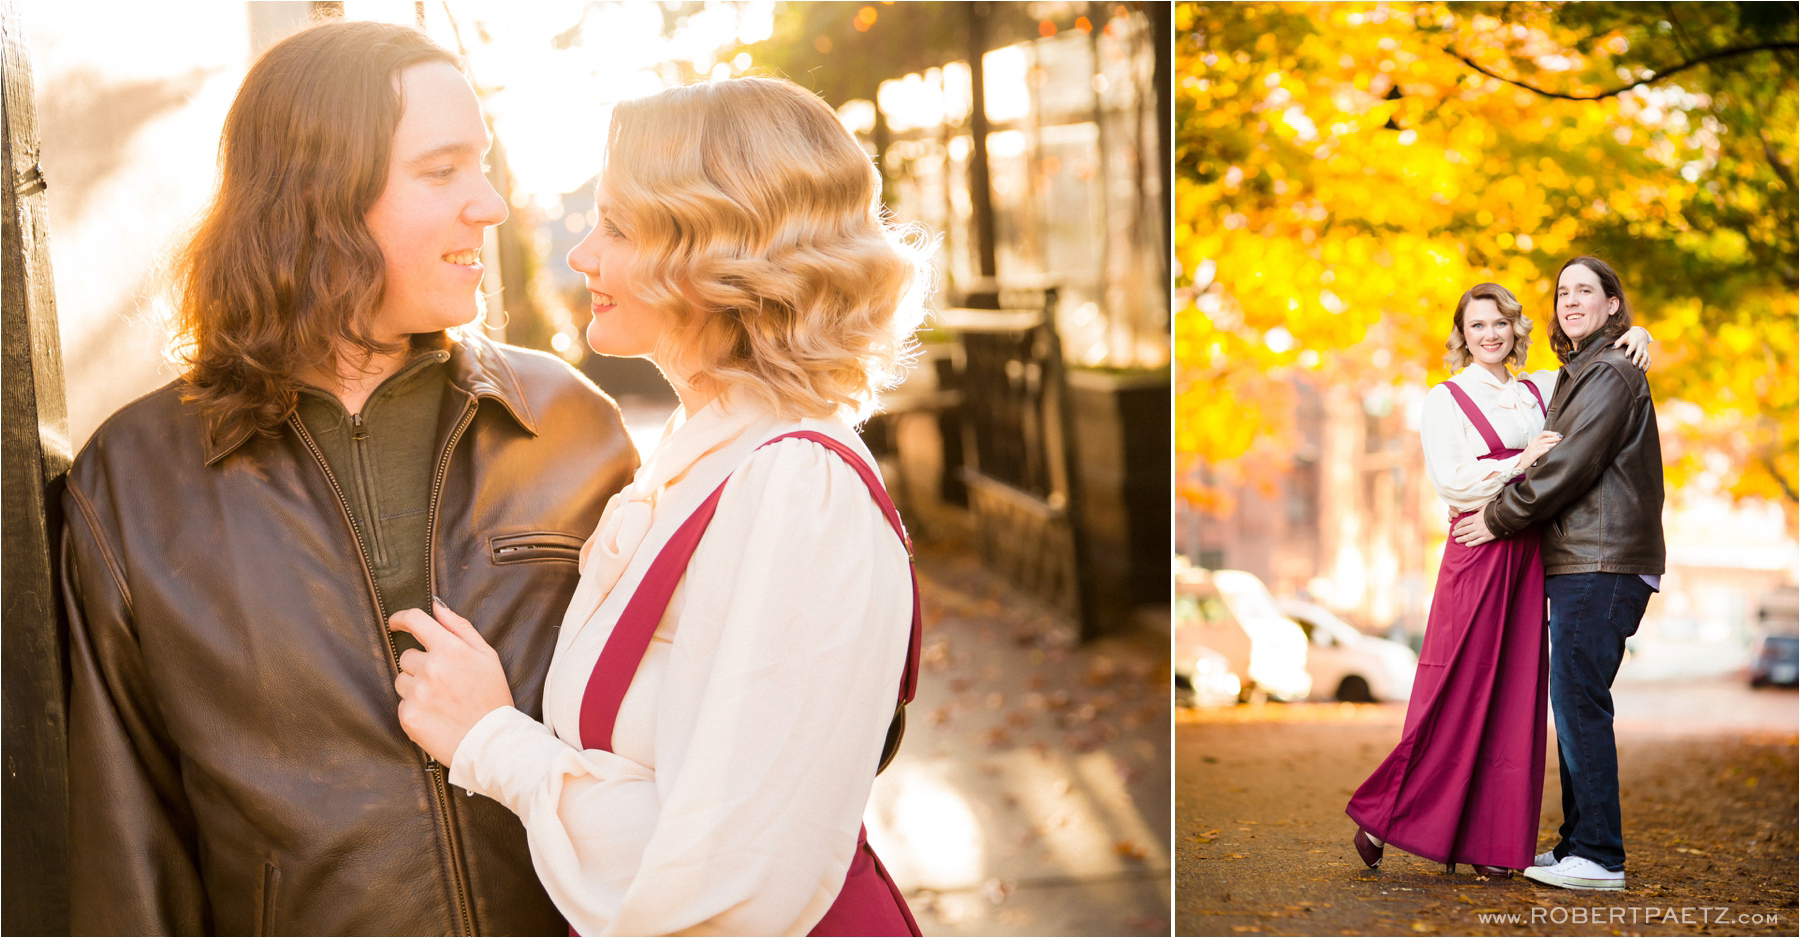 An engagement session in the Seattle neighborhood of Ballard, photographed by the destination wedding photographer, Robert Paetz.